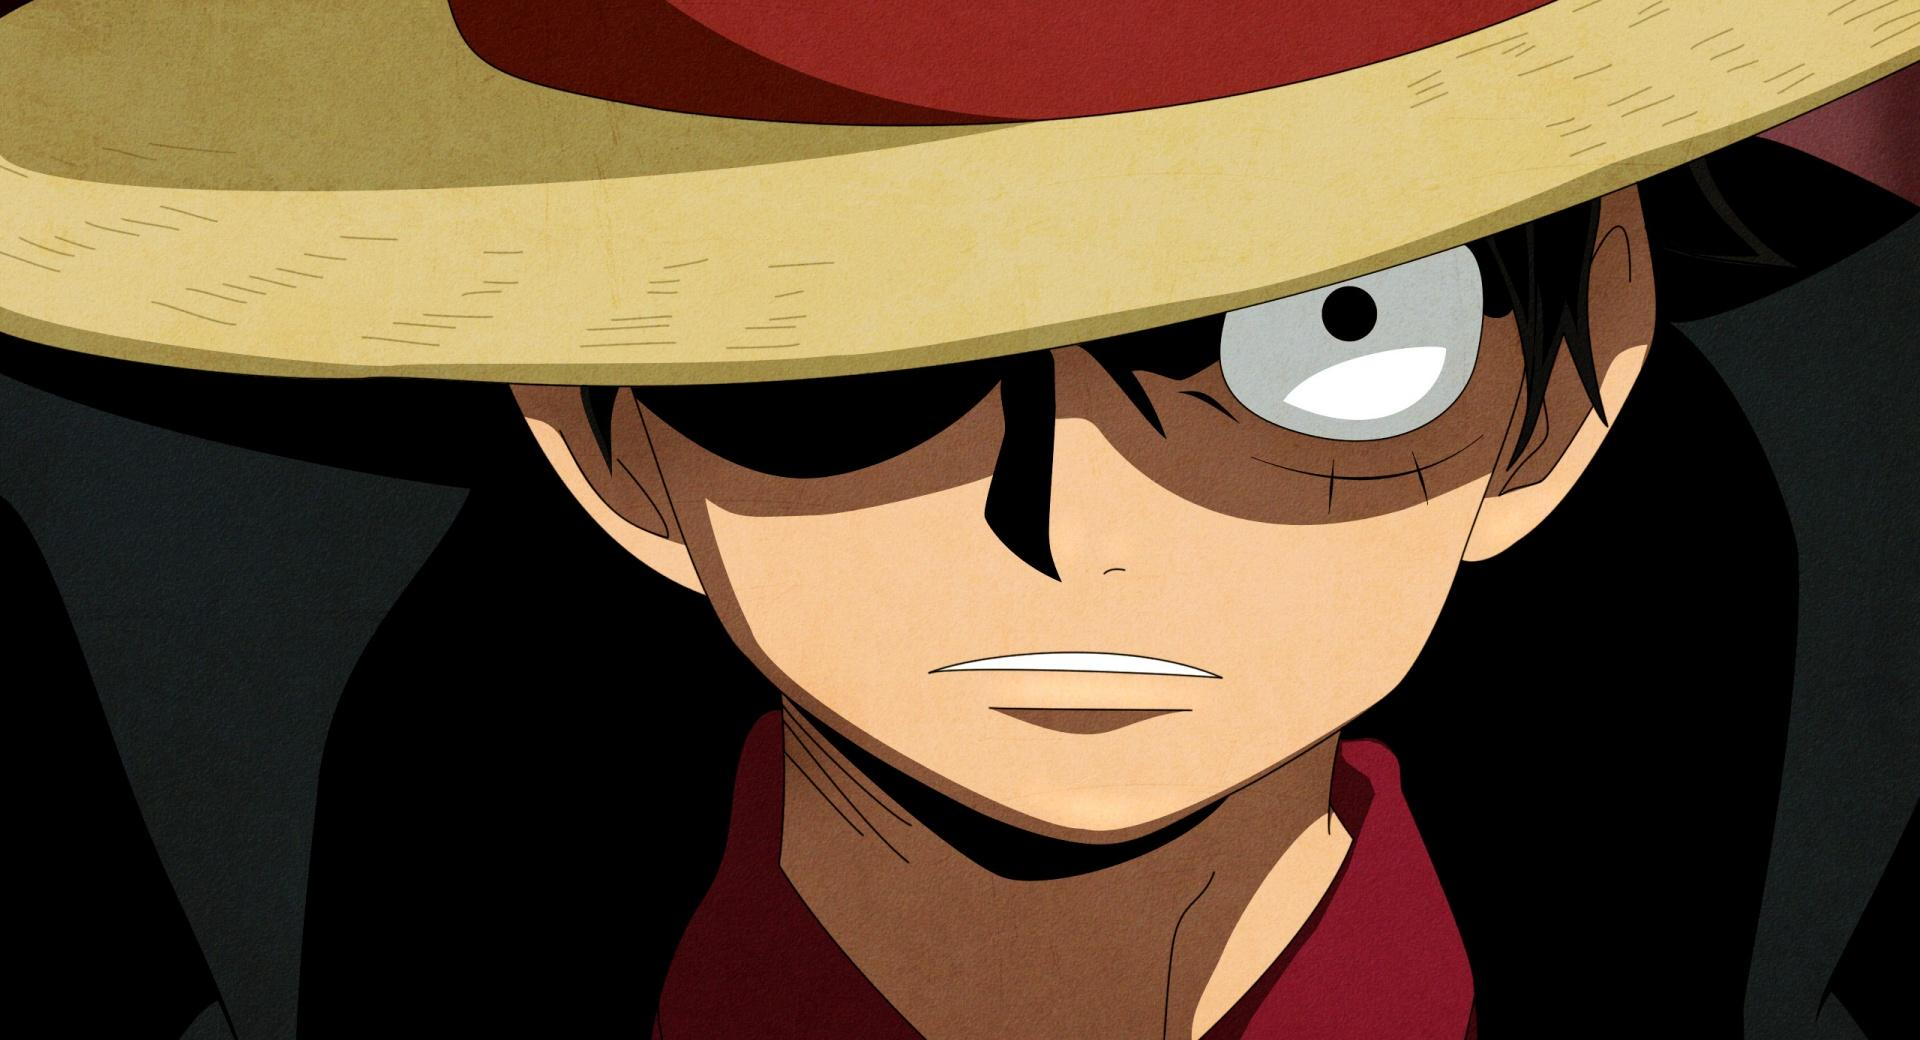 One Piece, Luffy at 1600 x 1200 size wallpapers HD quality